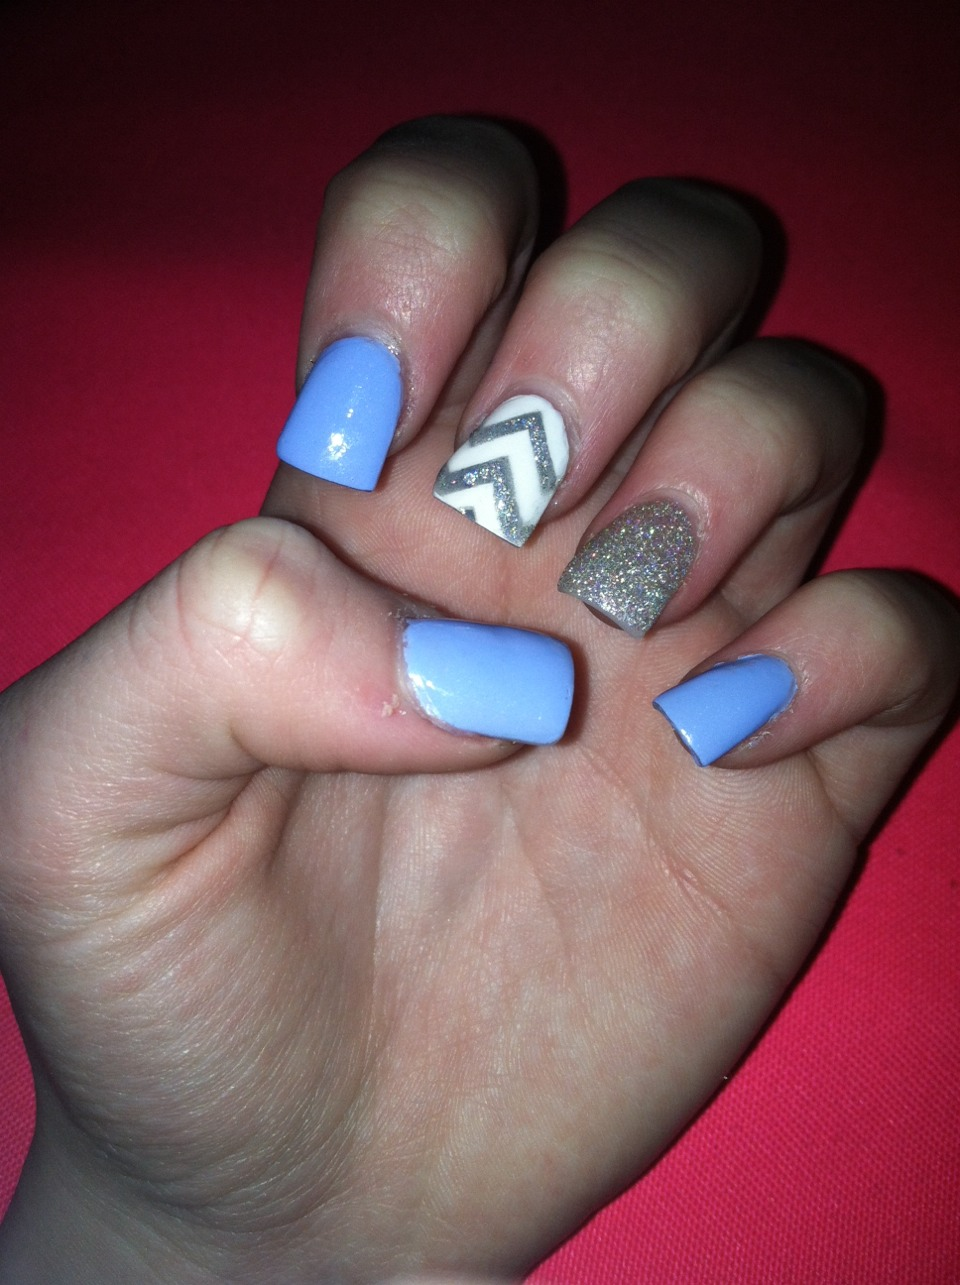 My nails right now Video---------->